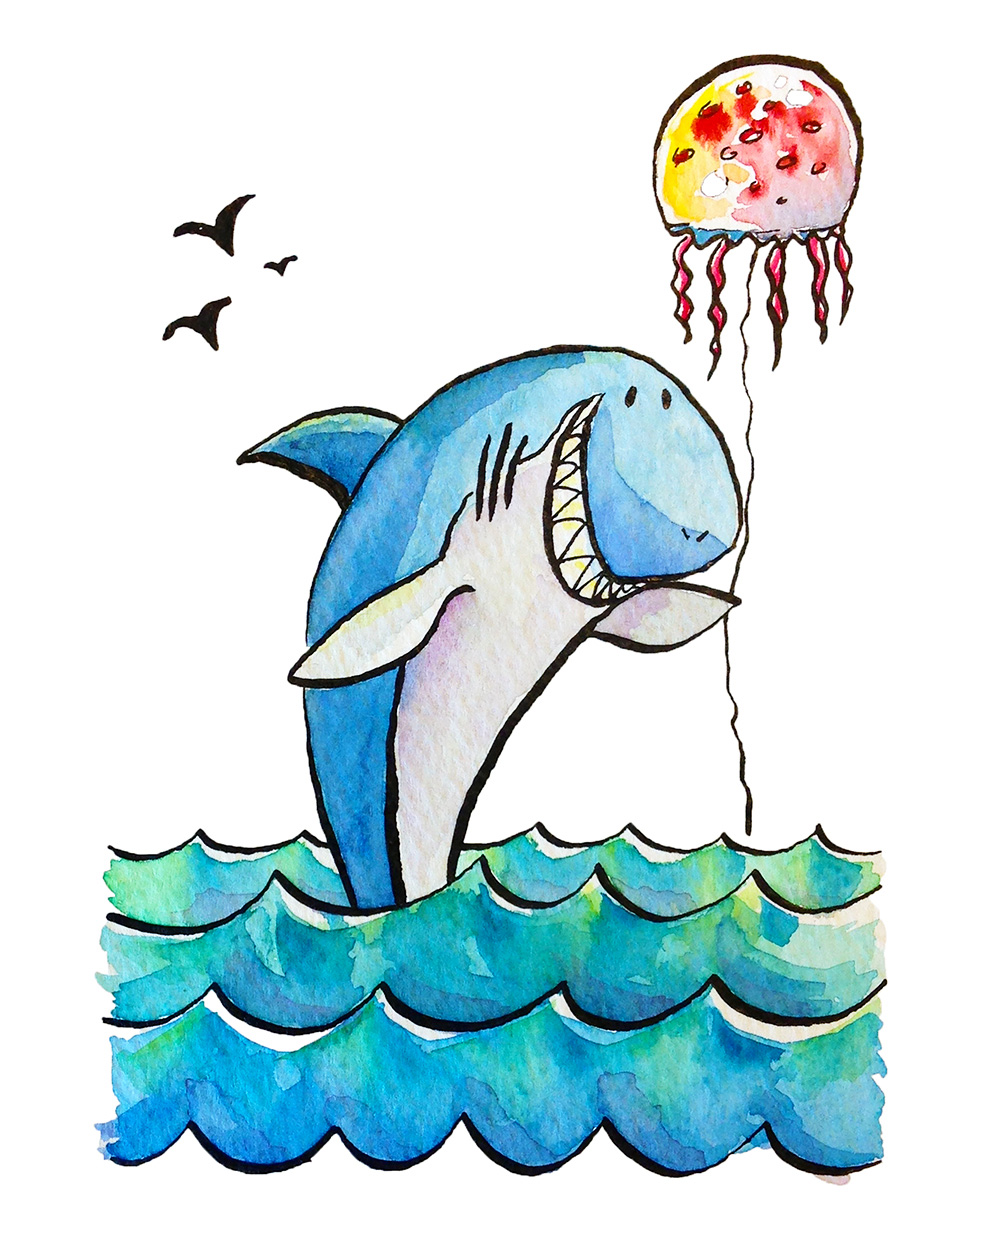 Shark and Jelly Balloon